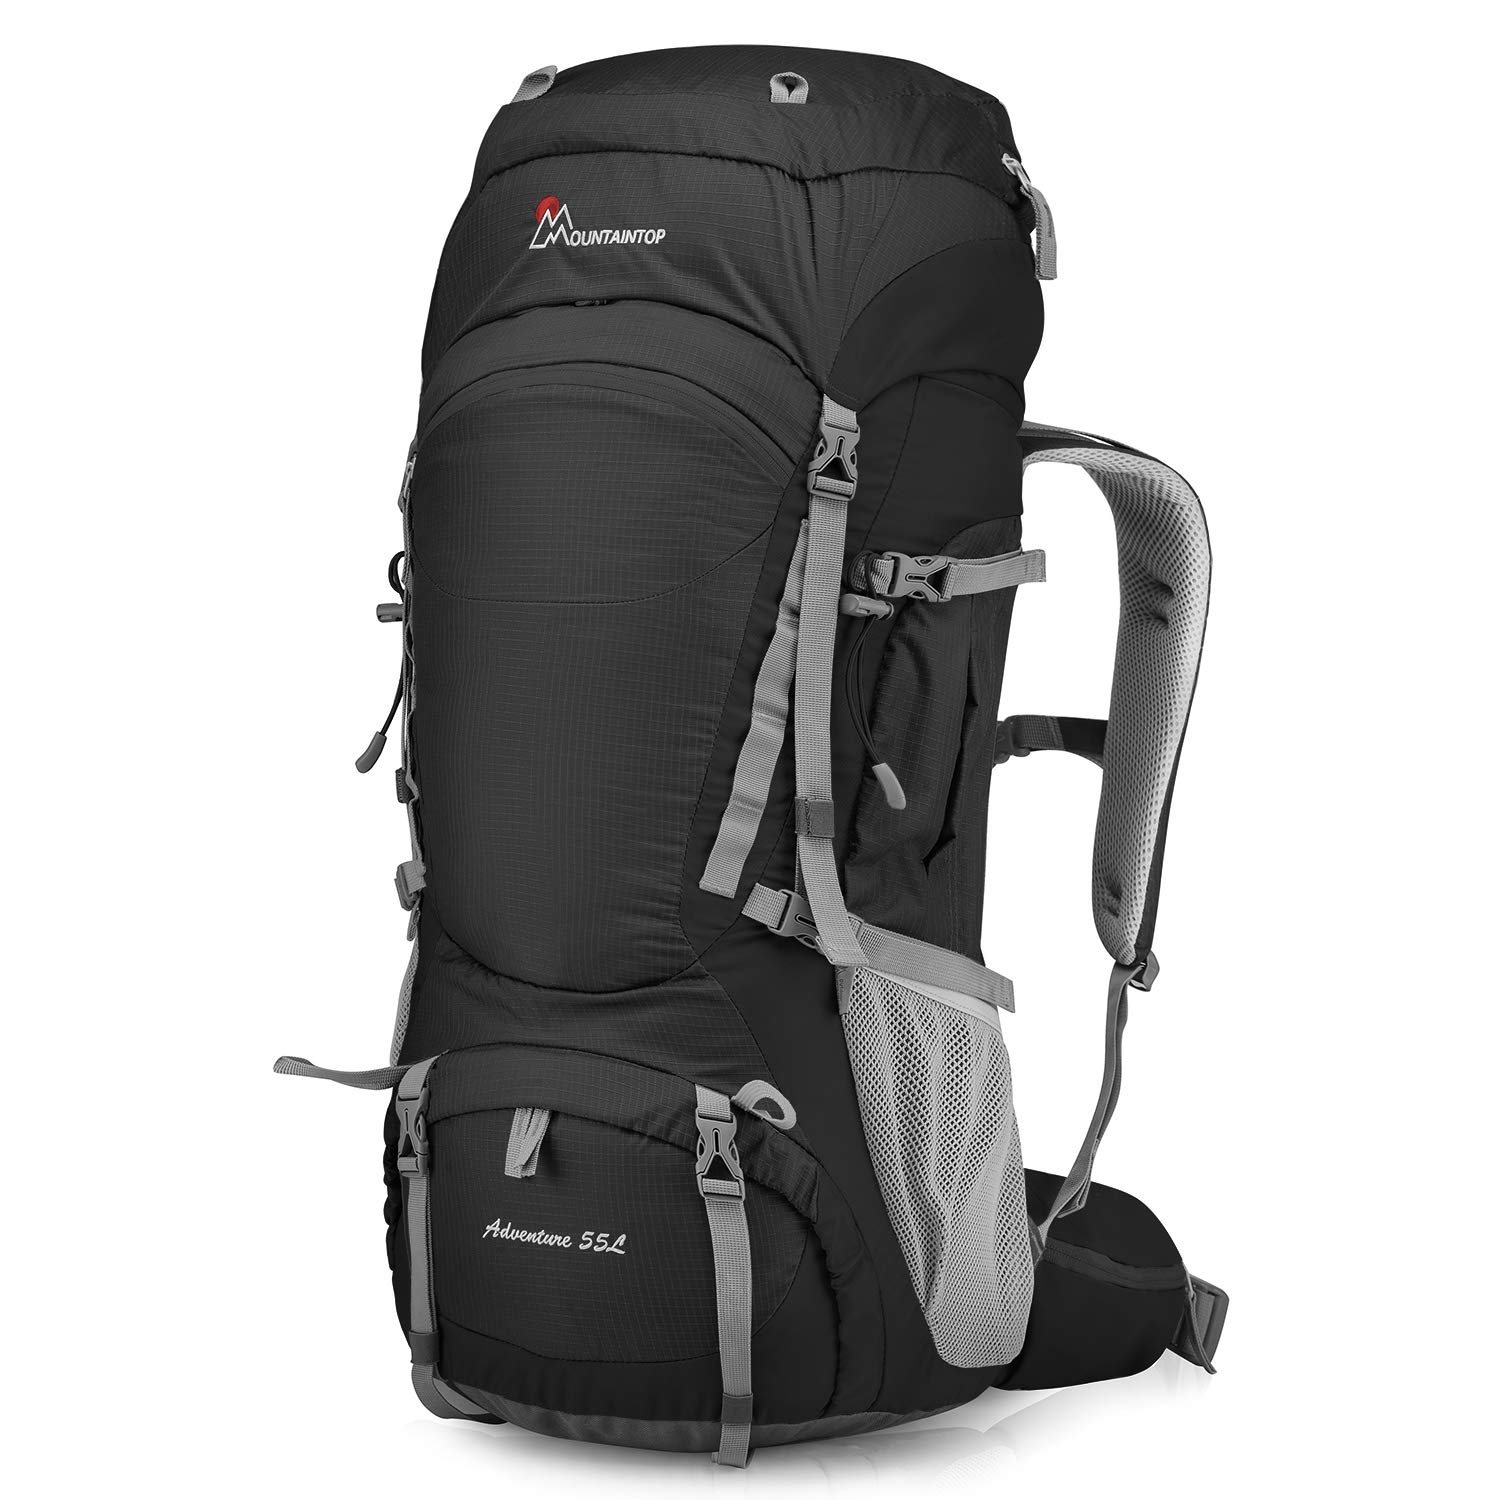 MOUNTAINTOP 55L 80L Hiking Backpack with Rain Cover